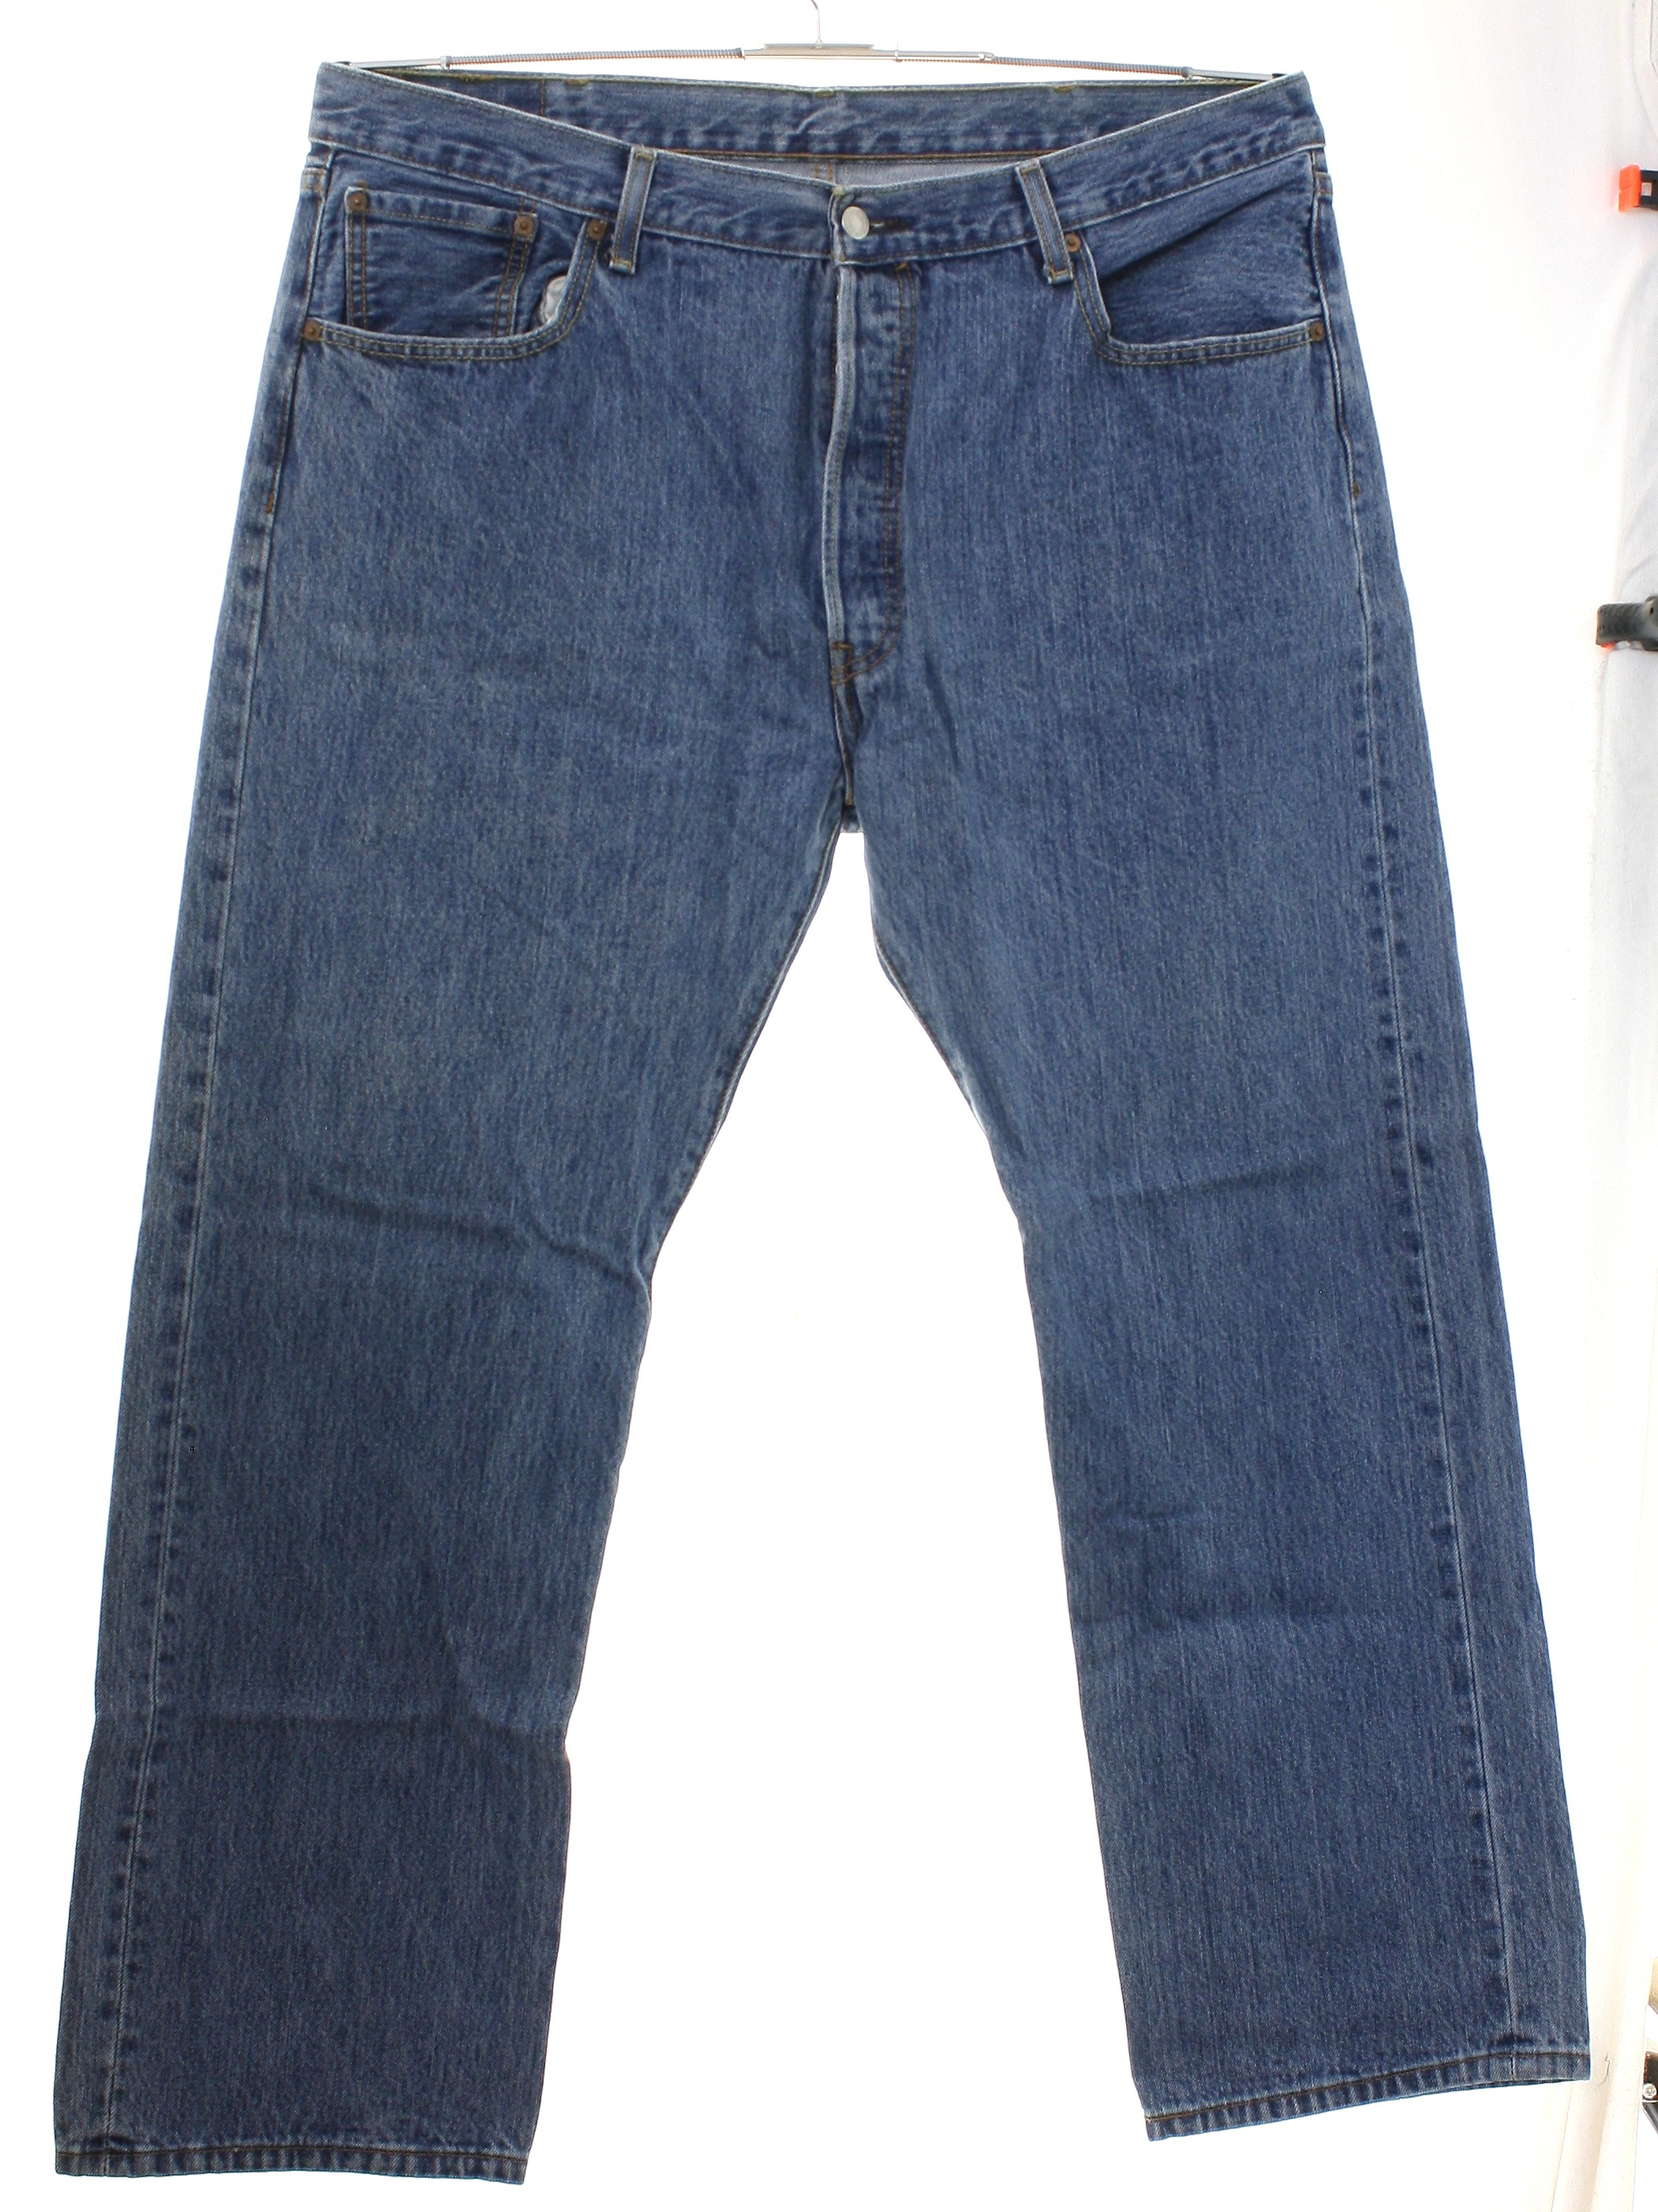 a7941f1b 1990's Levis Mens Levis 501 Straight Leg Denim Jeans Pants $30.00 In stock.  Item No. 299542. 90s or Newer ...